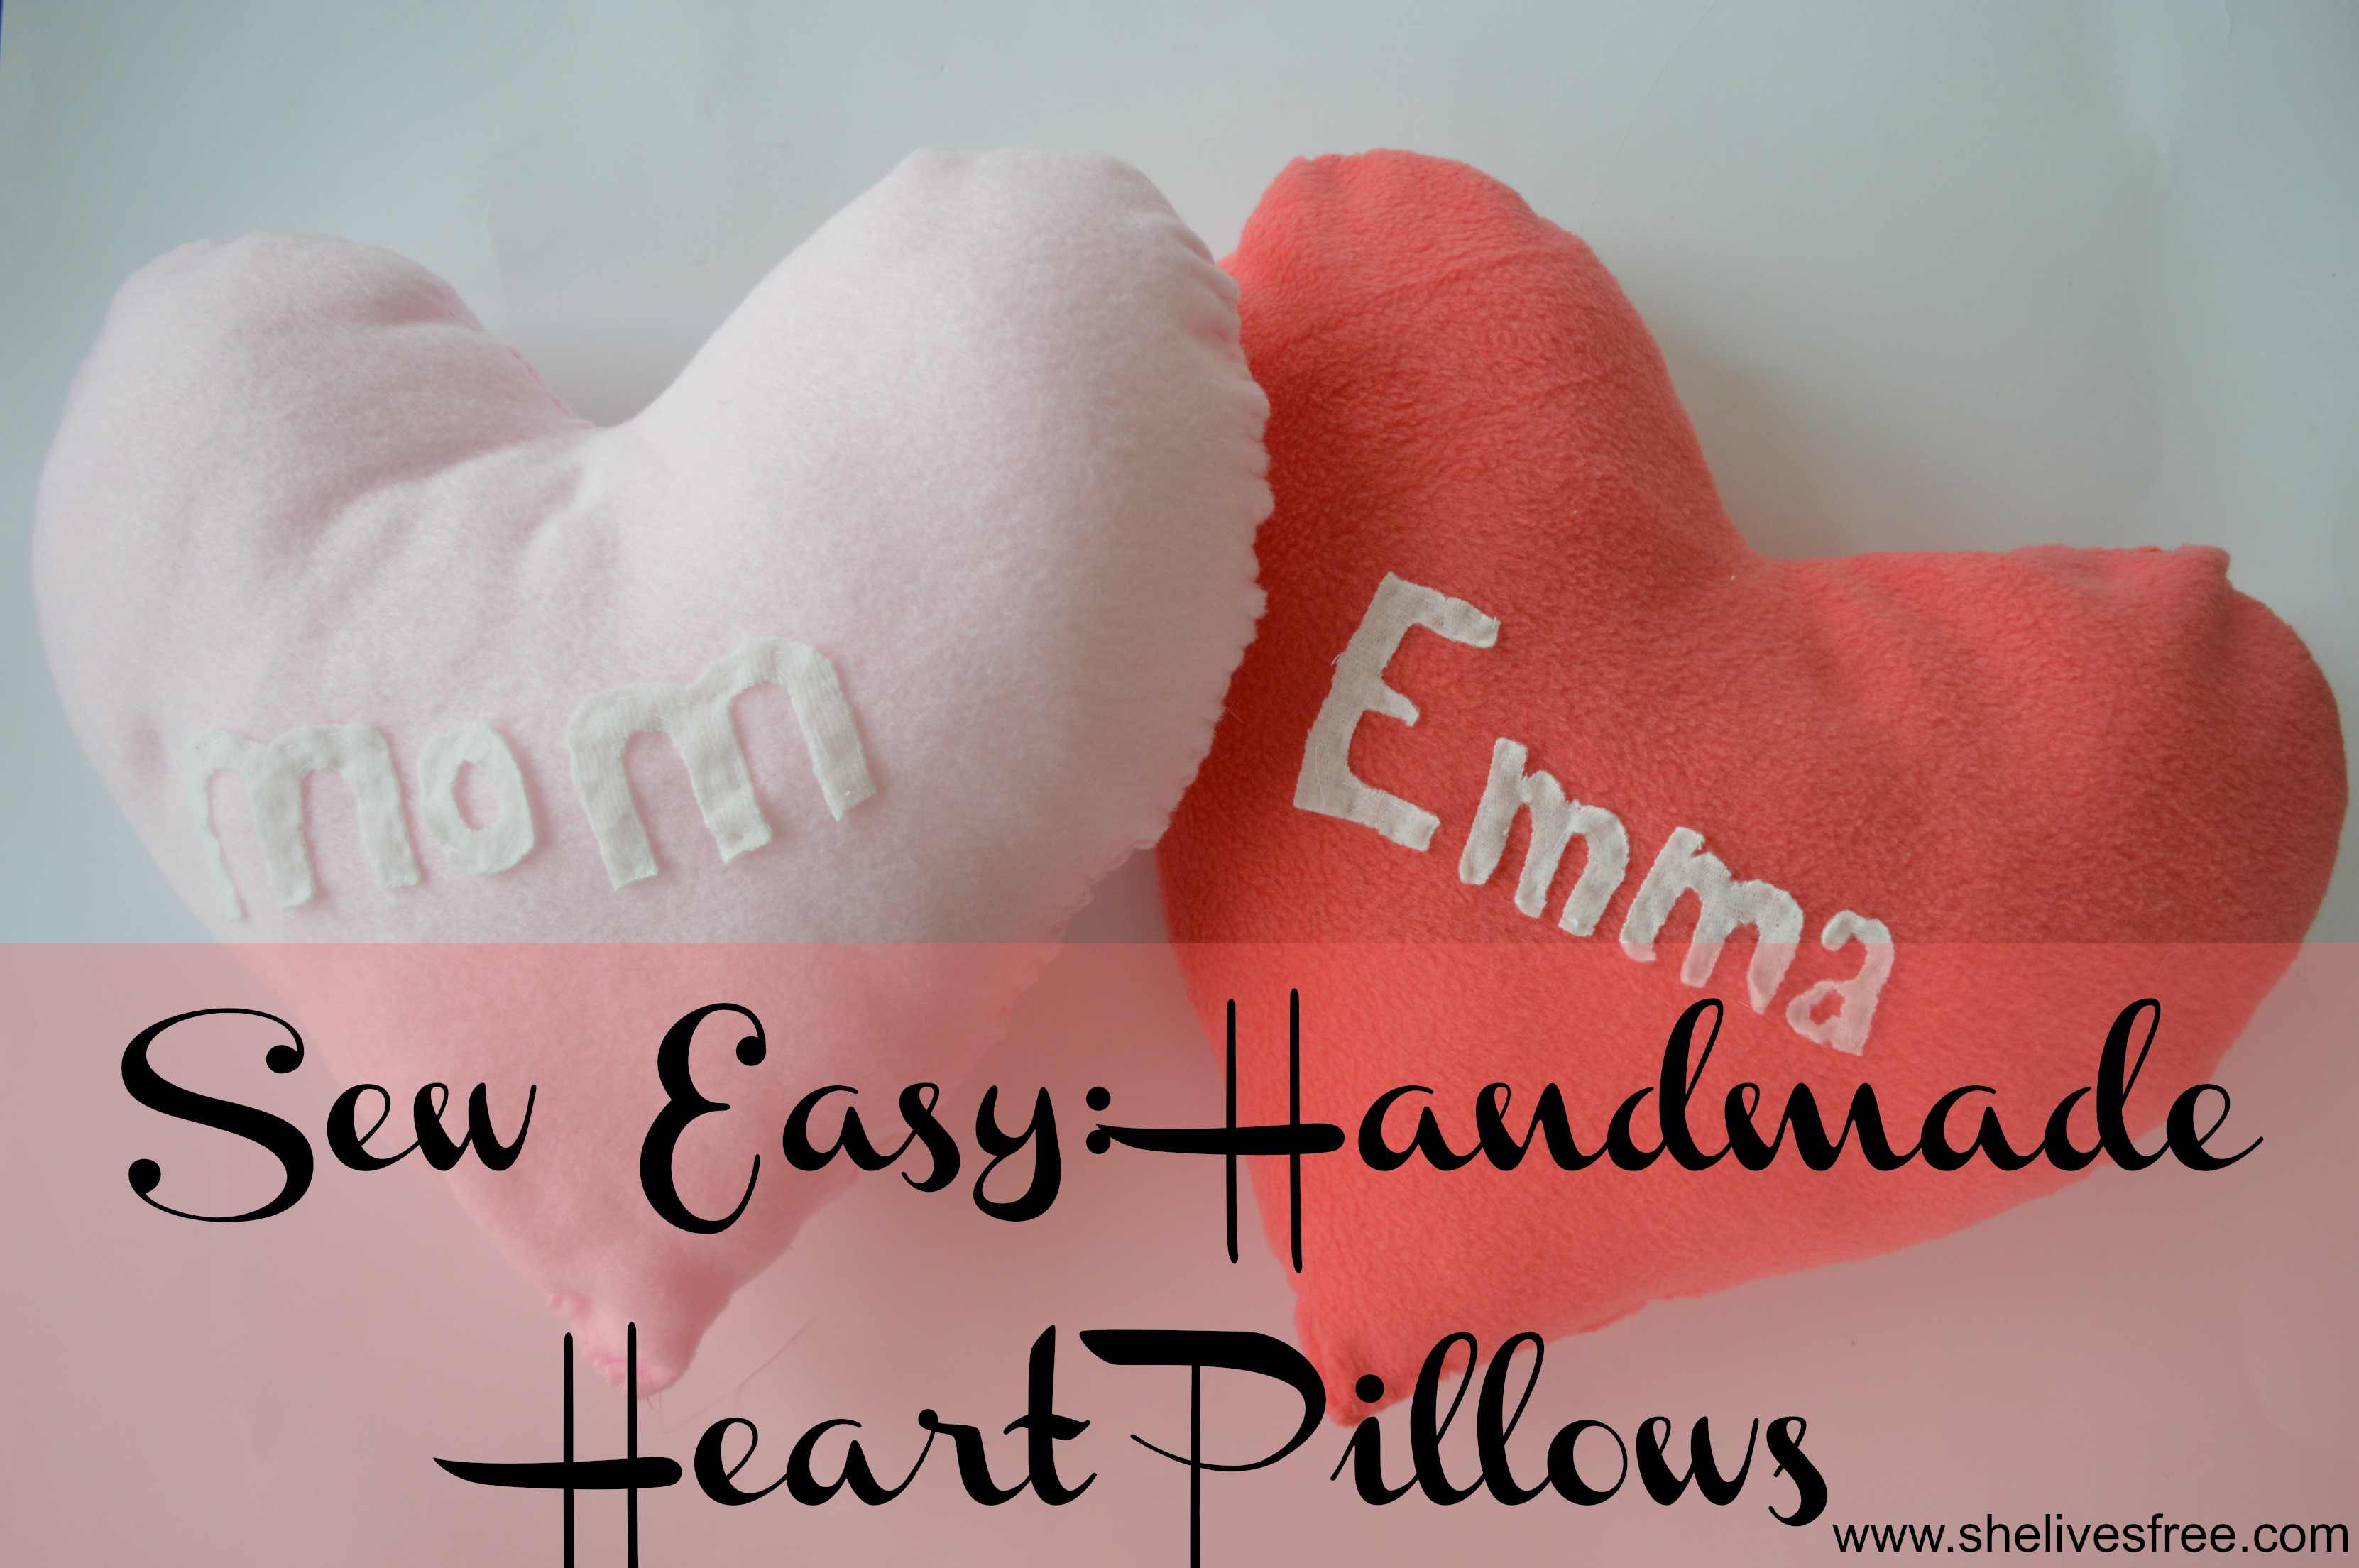 Sew Easy How to Make Handmade Heart Pillows